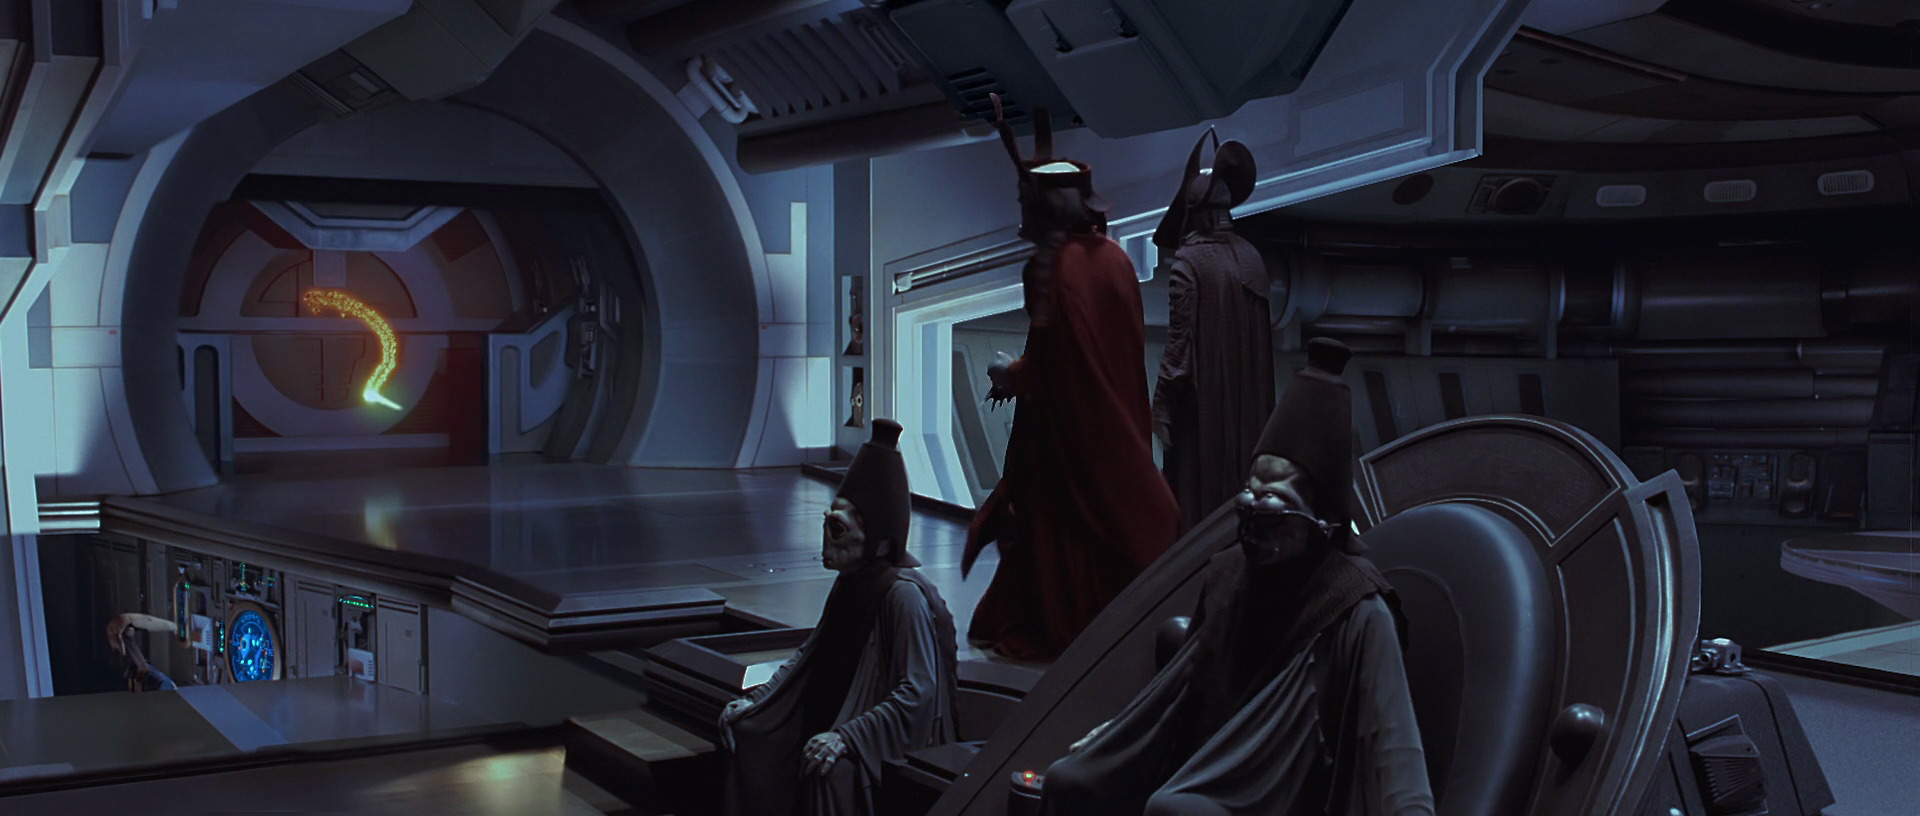 starwars1-movie-screencaps.com-562